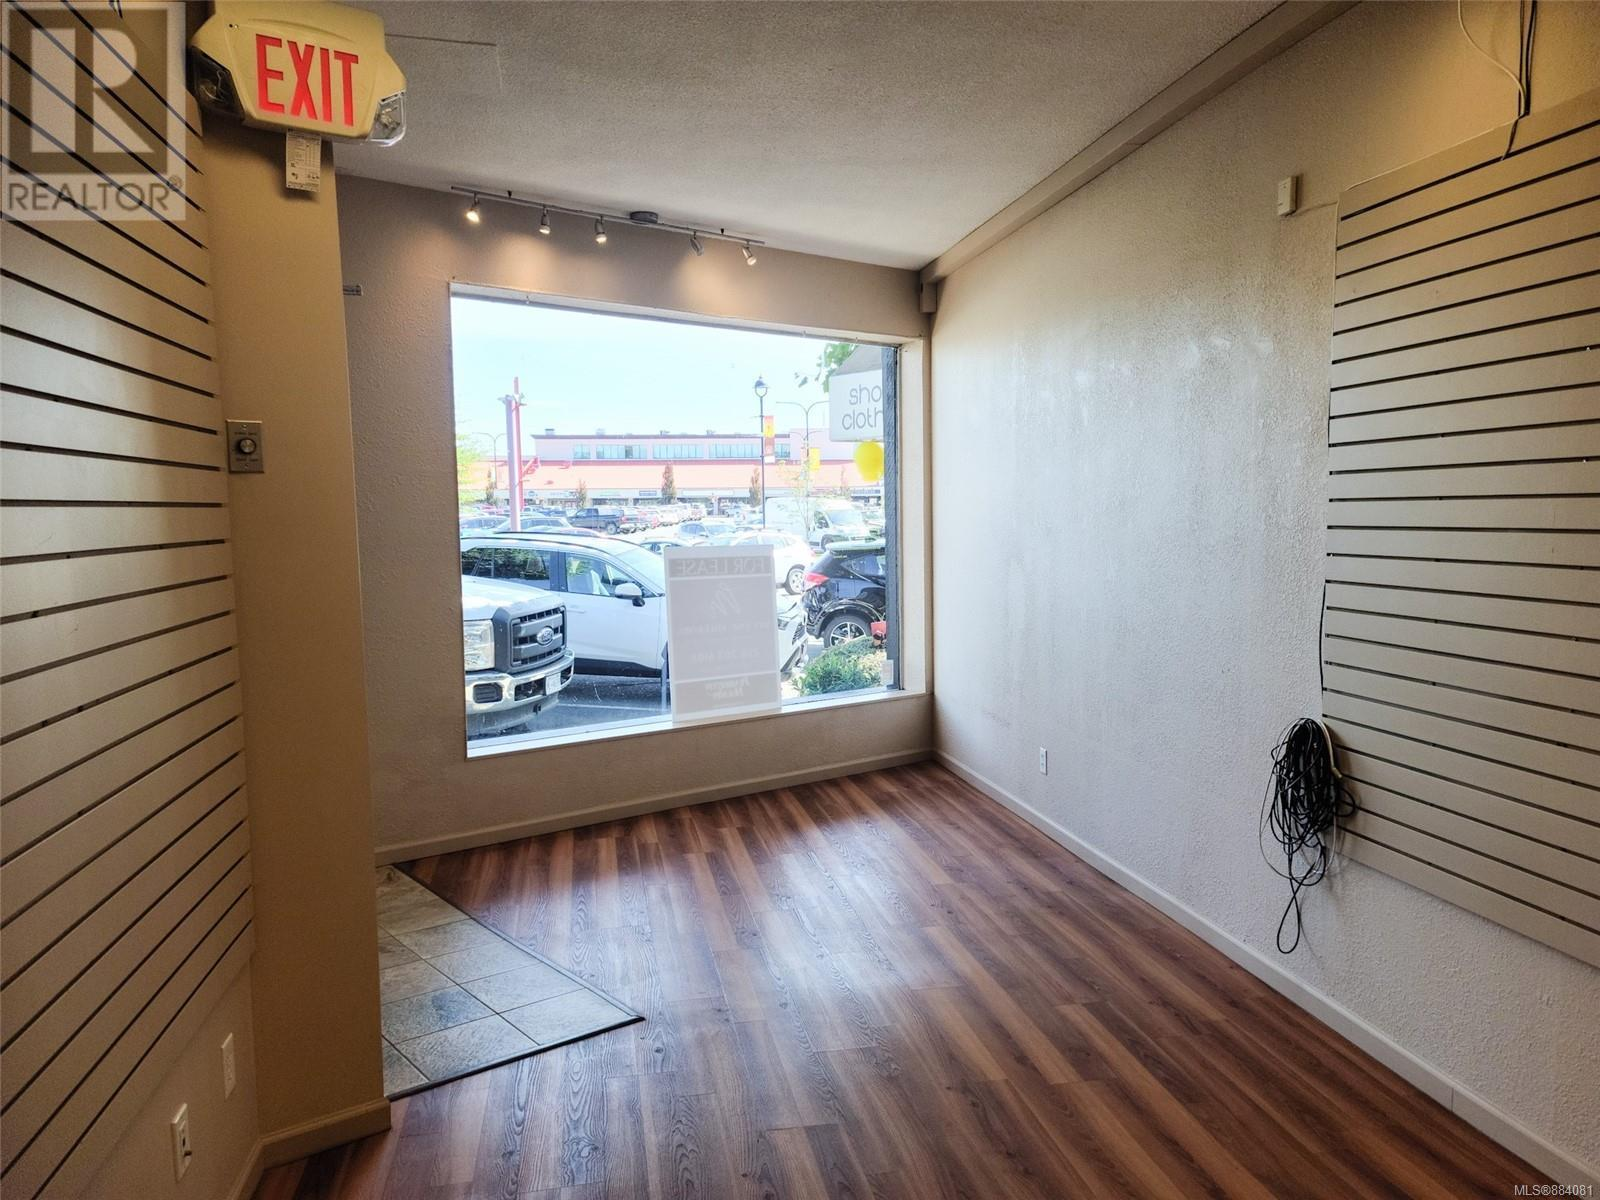 MLS® #884081 - Campbell River Retail For lease Image #5